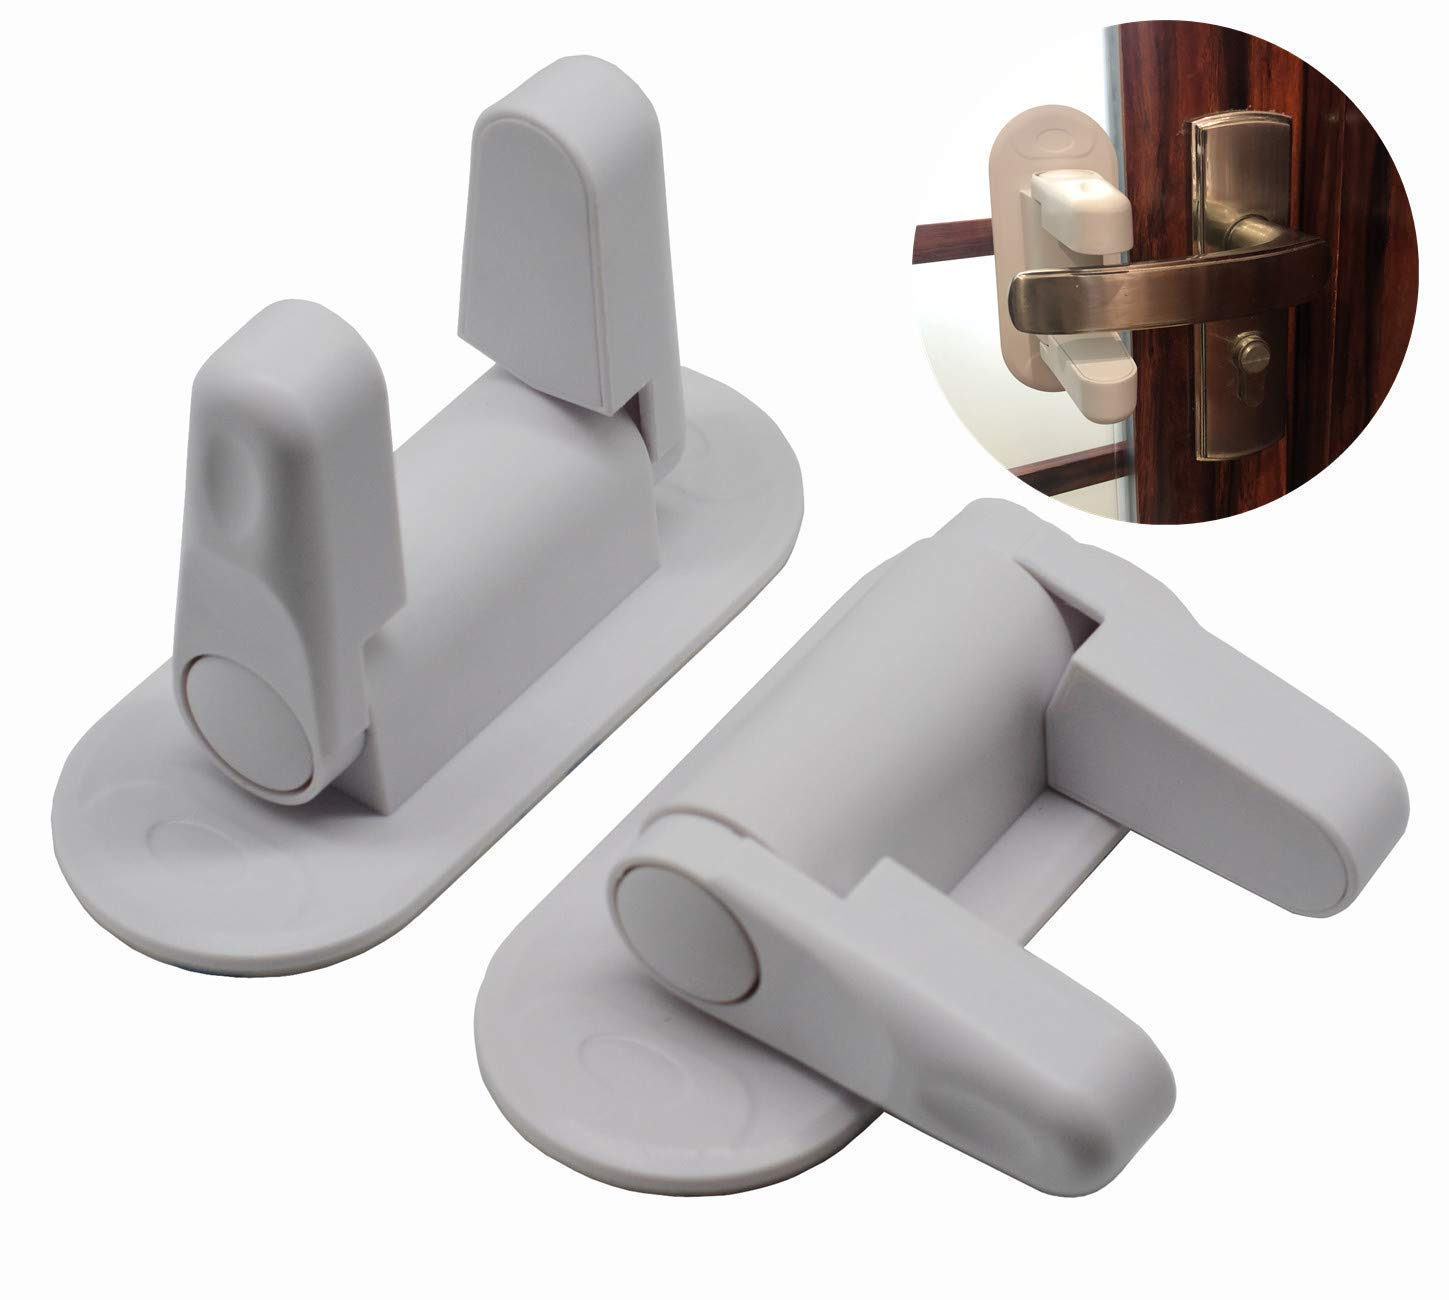 Door Lever Lock (2 Pack) Child Proof Doors & Handles 3M Adhesive - Child Safety FONLLAM